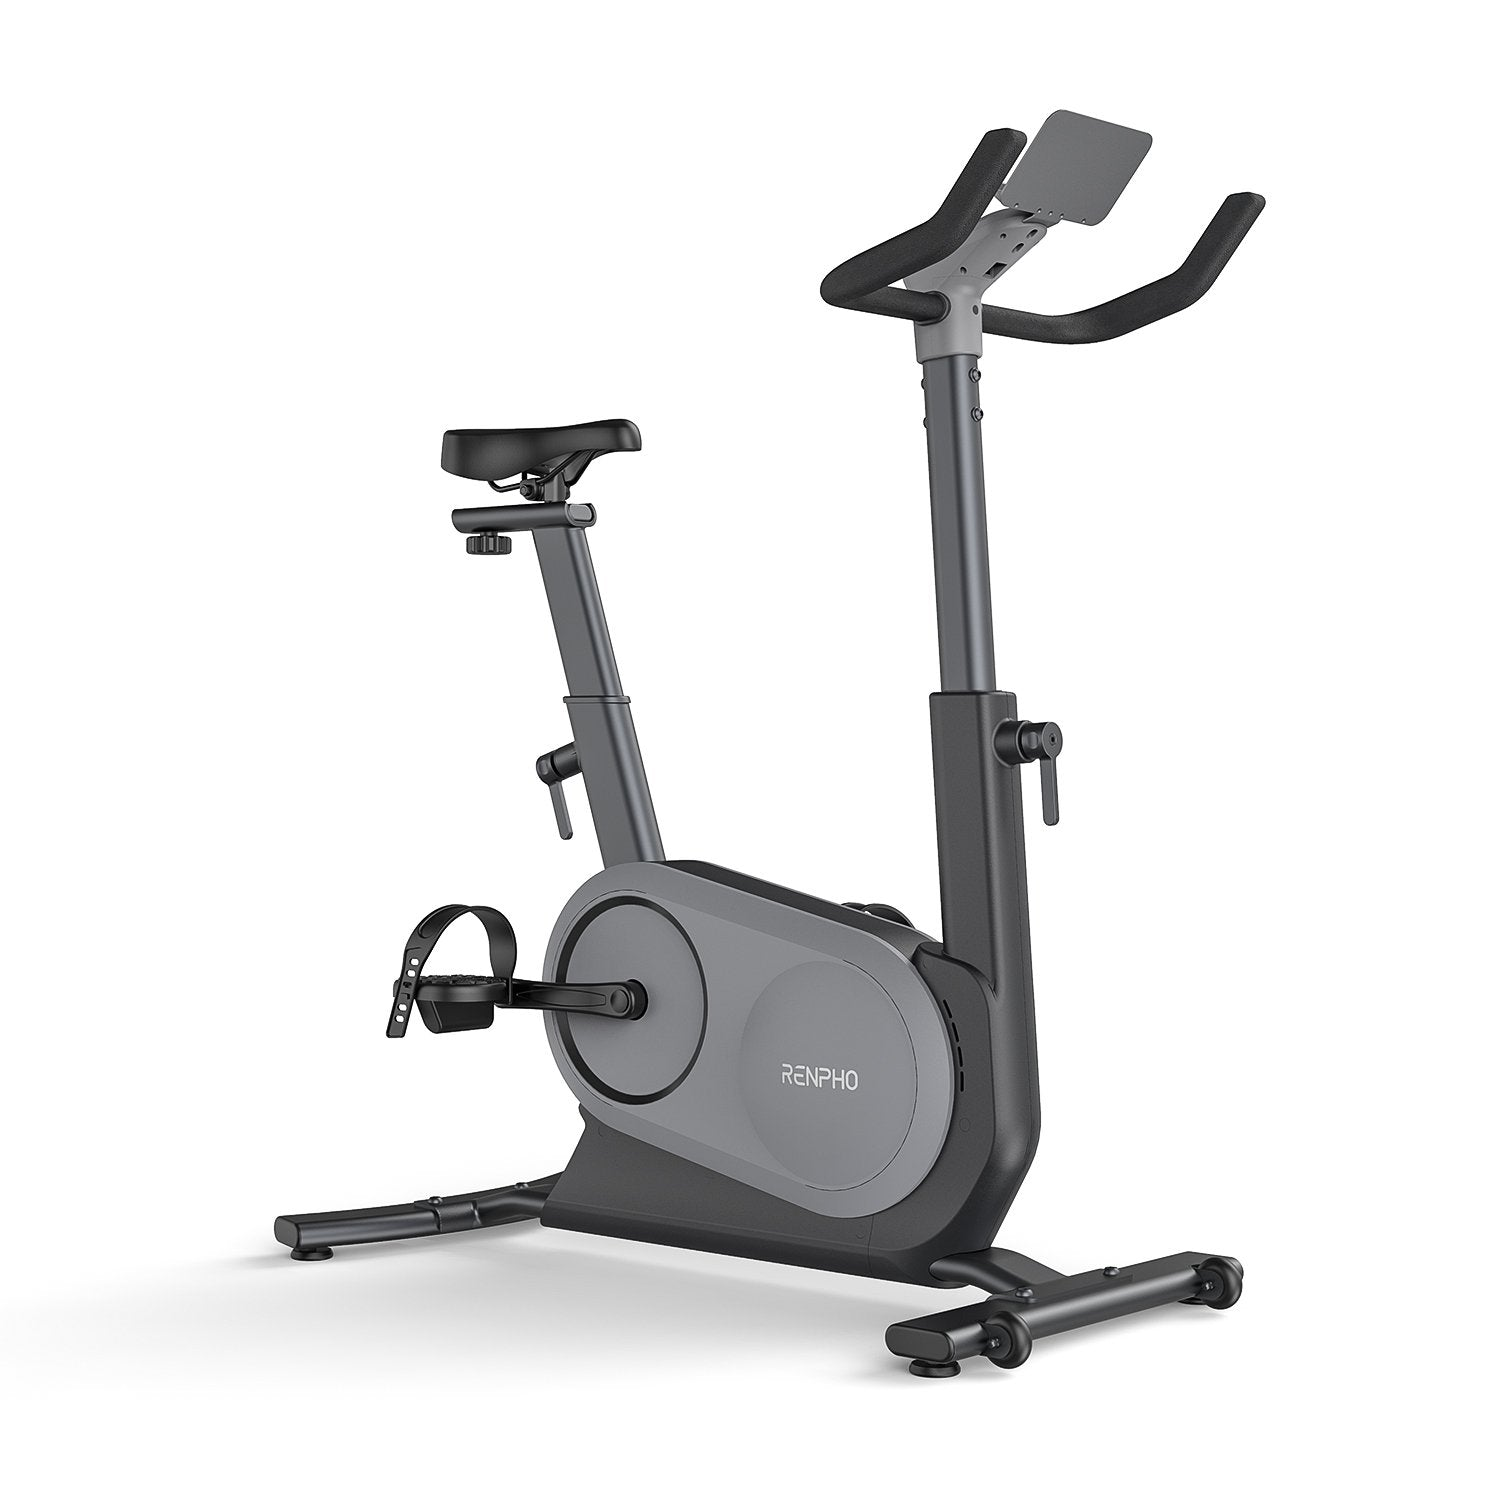 RENPHO AI Exercise Bike with App